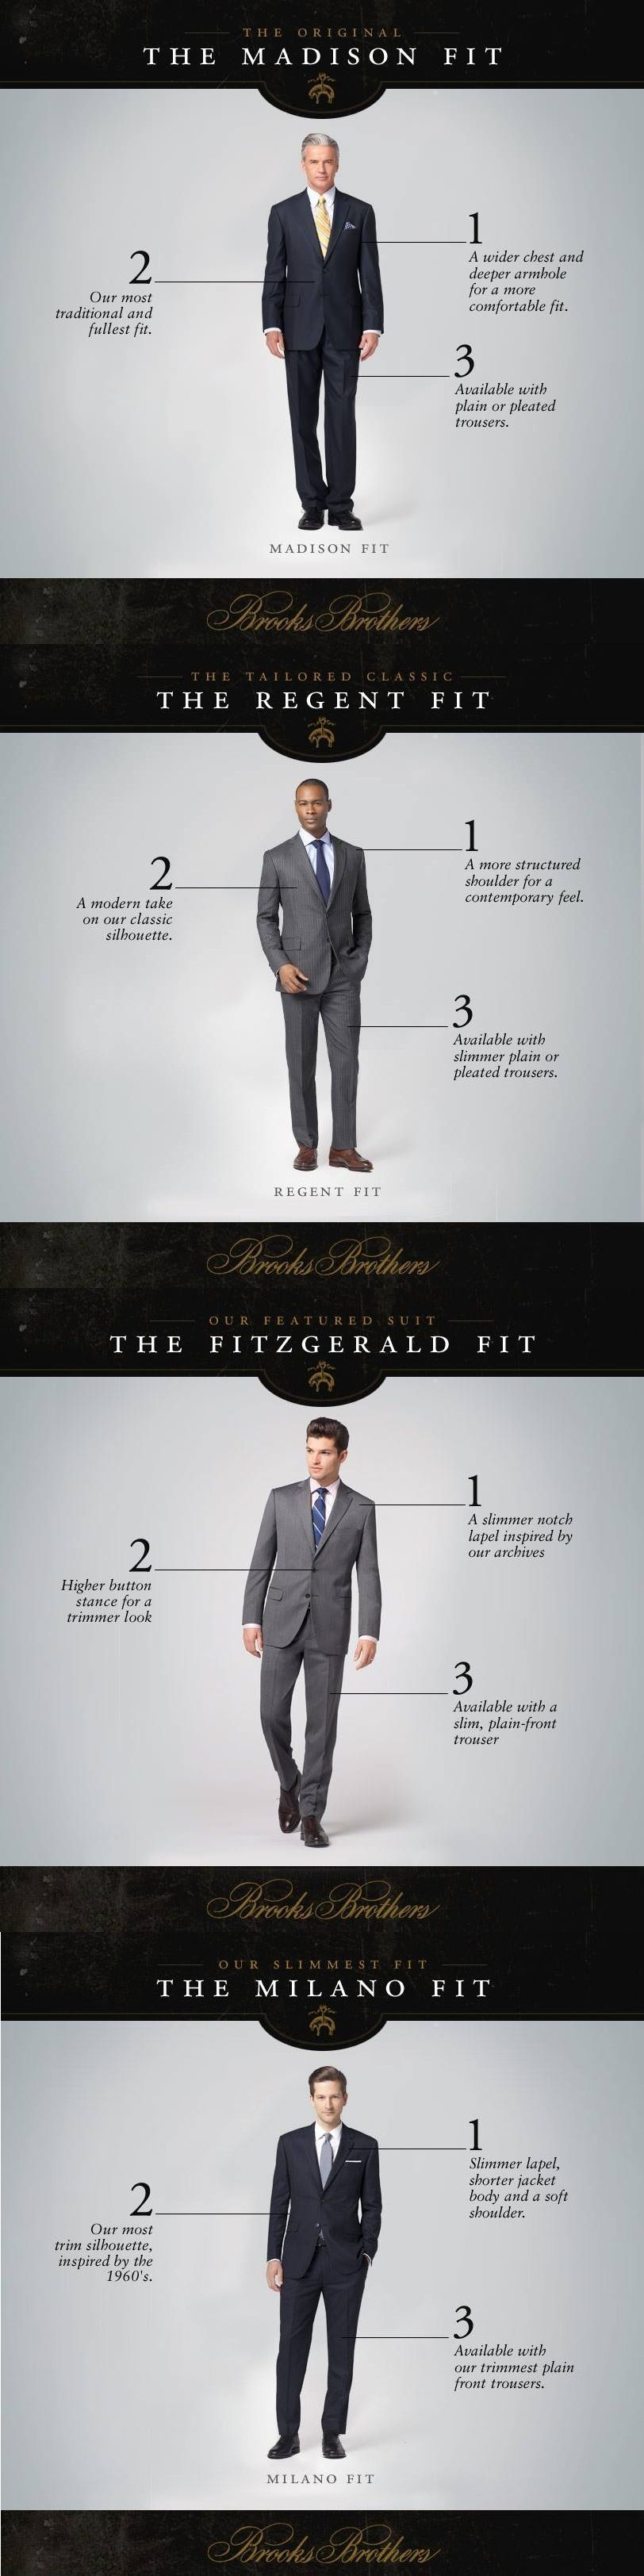 Brooks Brothers Suit Fits